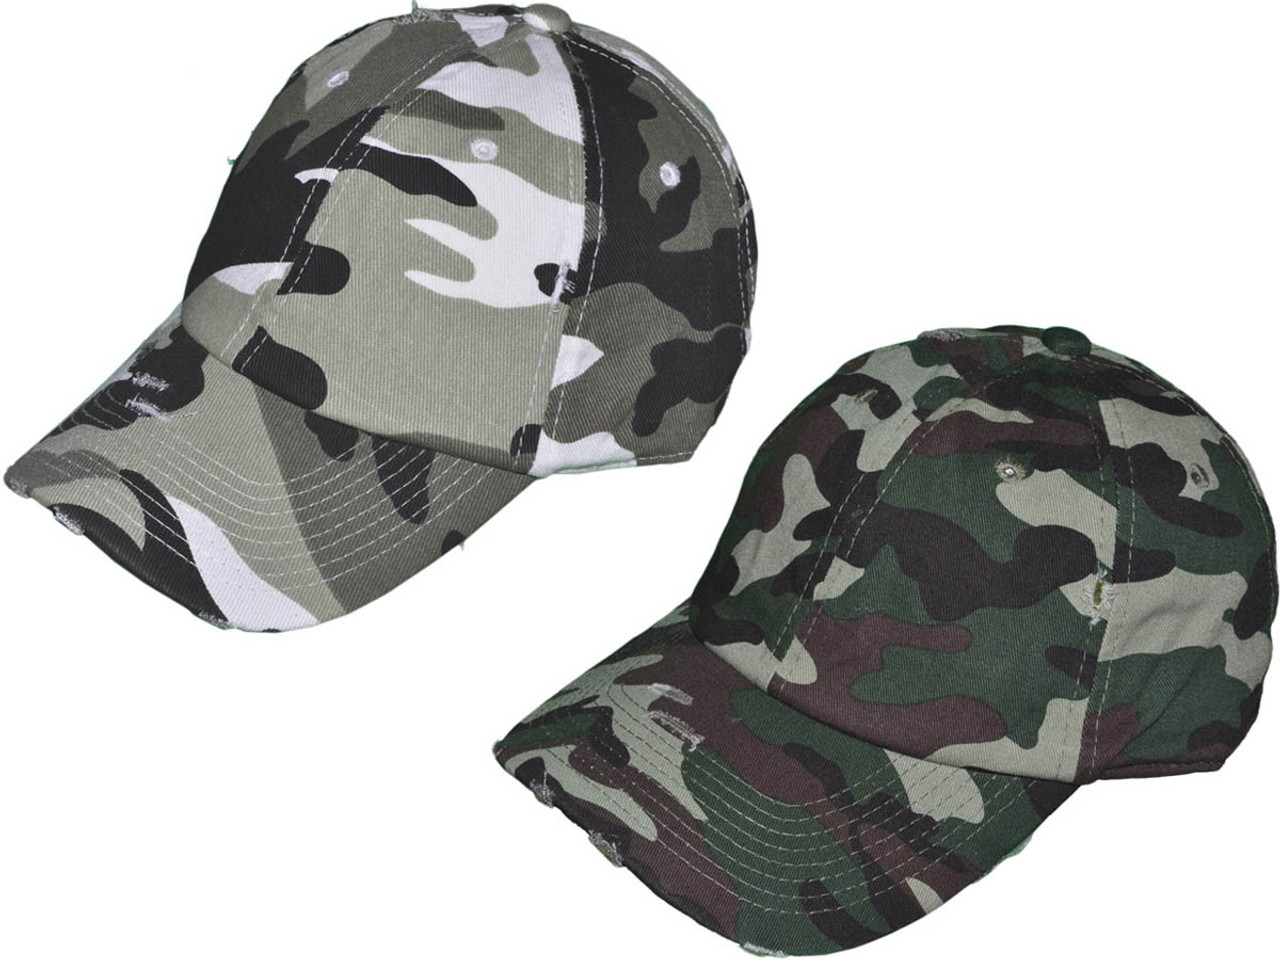 c4bdd02d959f3 Camo Vintage Dad Hats. Previous. Camo Vintage Dad Hats  Camo Vintage Dad  Hats - Low Profile Unstructured Washed Cotton Twill Polo BK ...